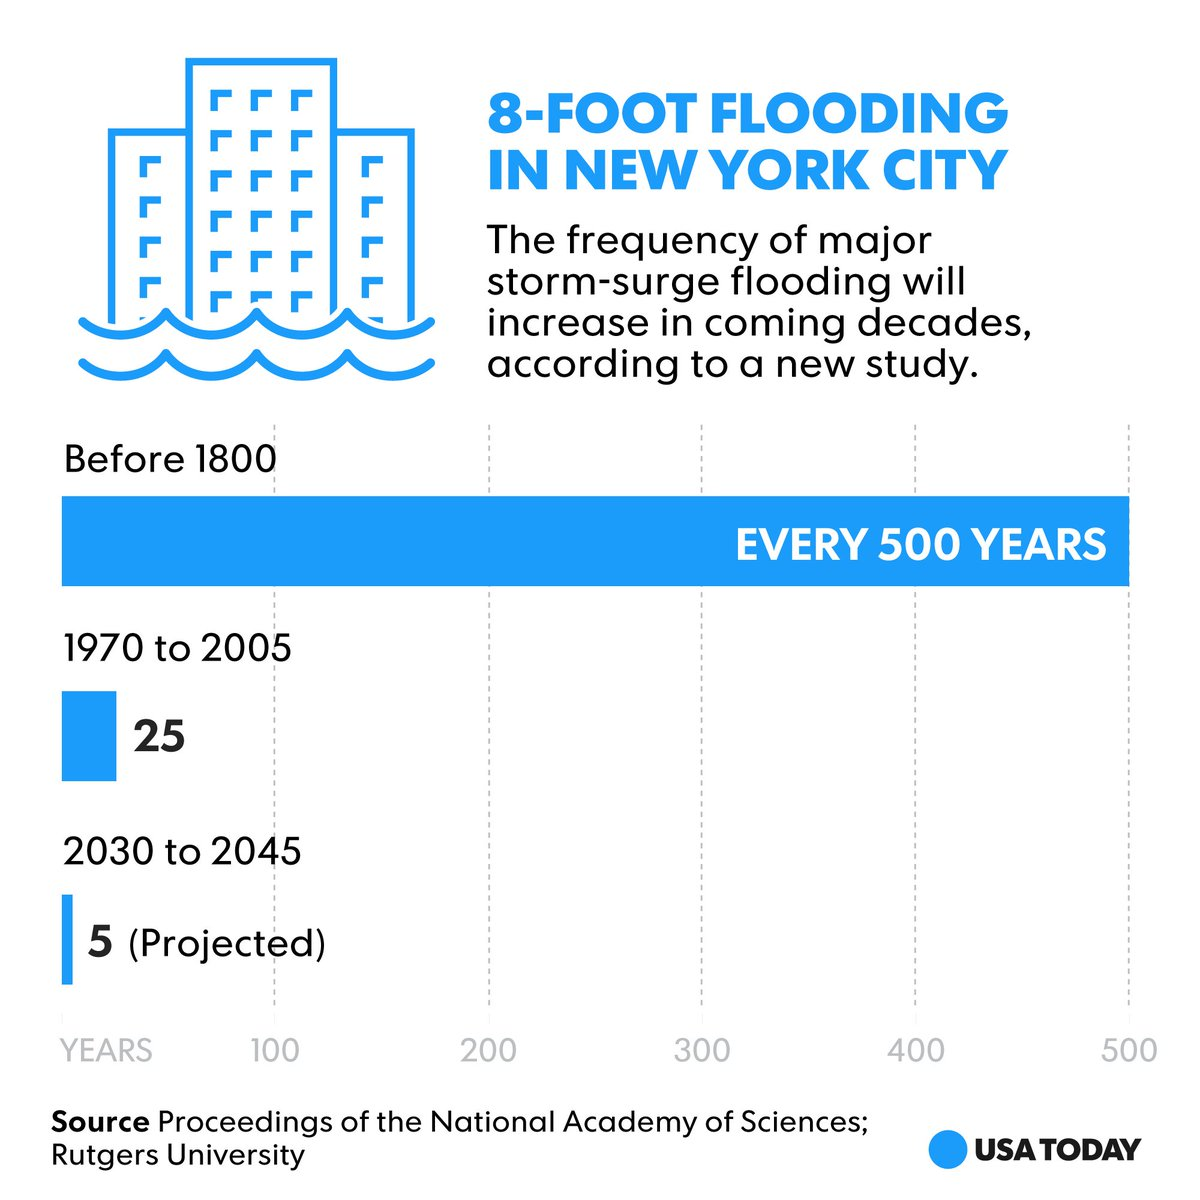 Catastrophic, Sandy-like floods could hit NYC every 5 years due to sea-level rise